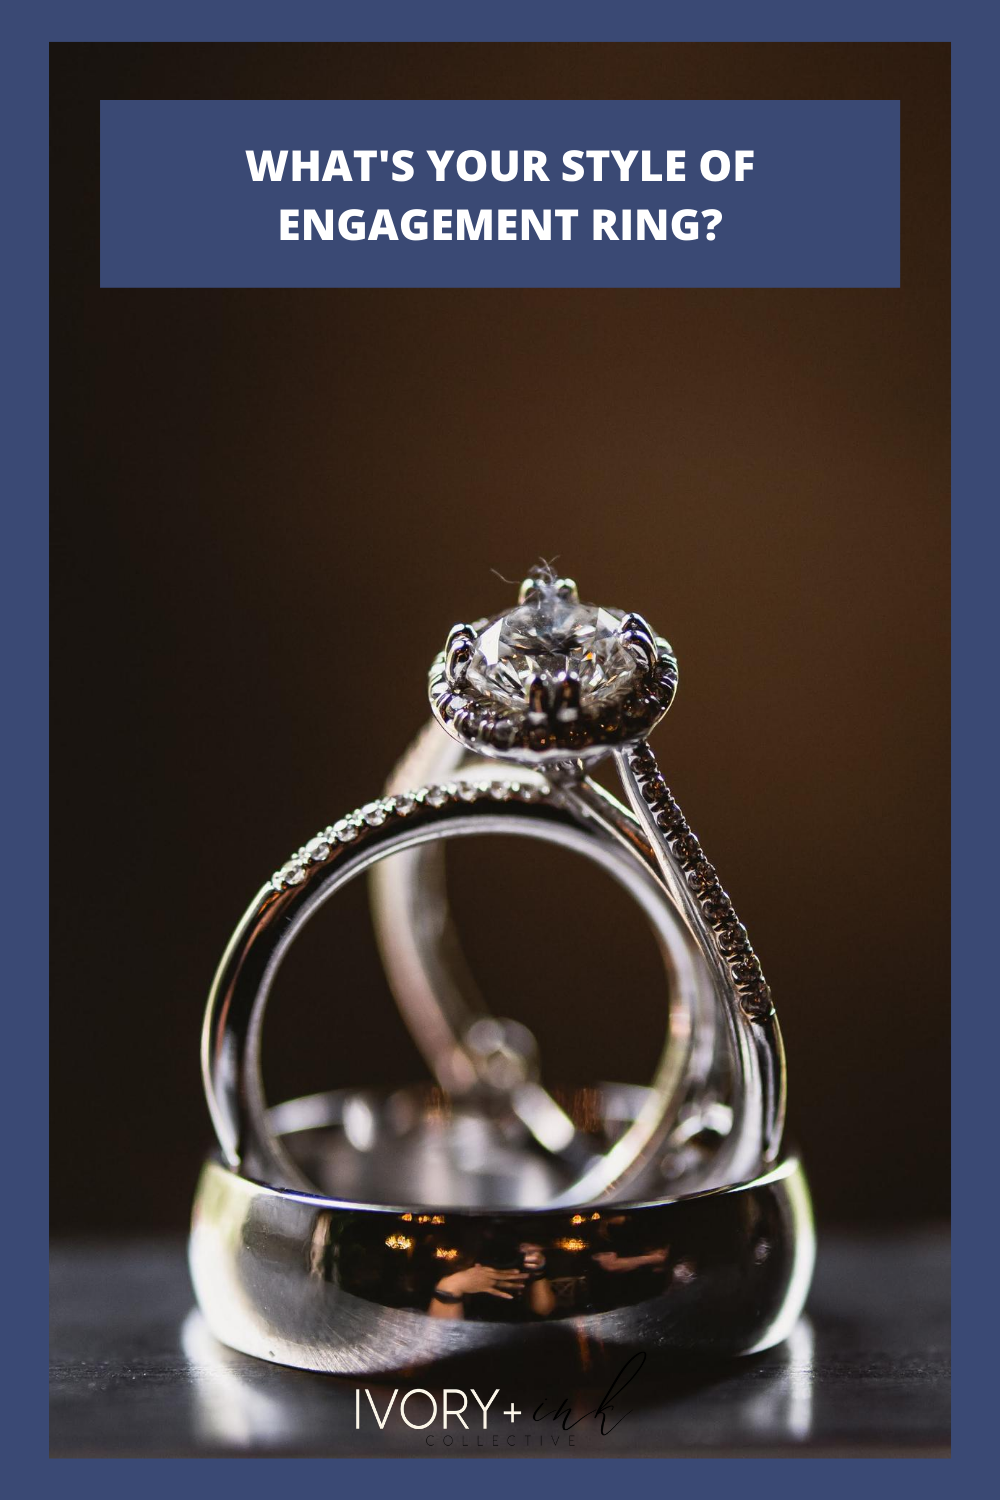 WHAT'S YOUR STYLE OF ENGAGEMENT RING?